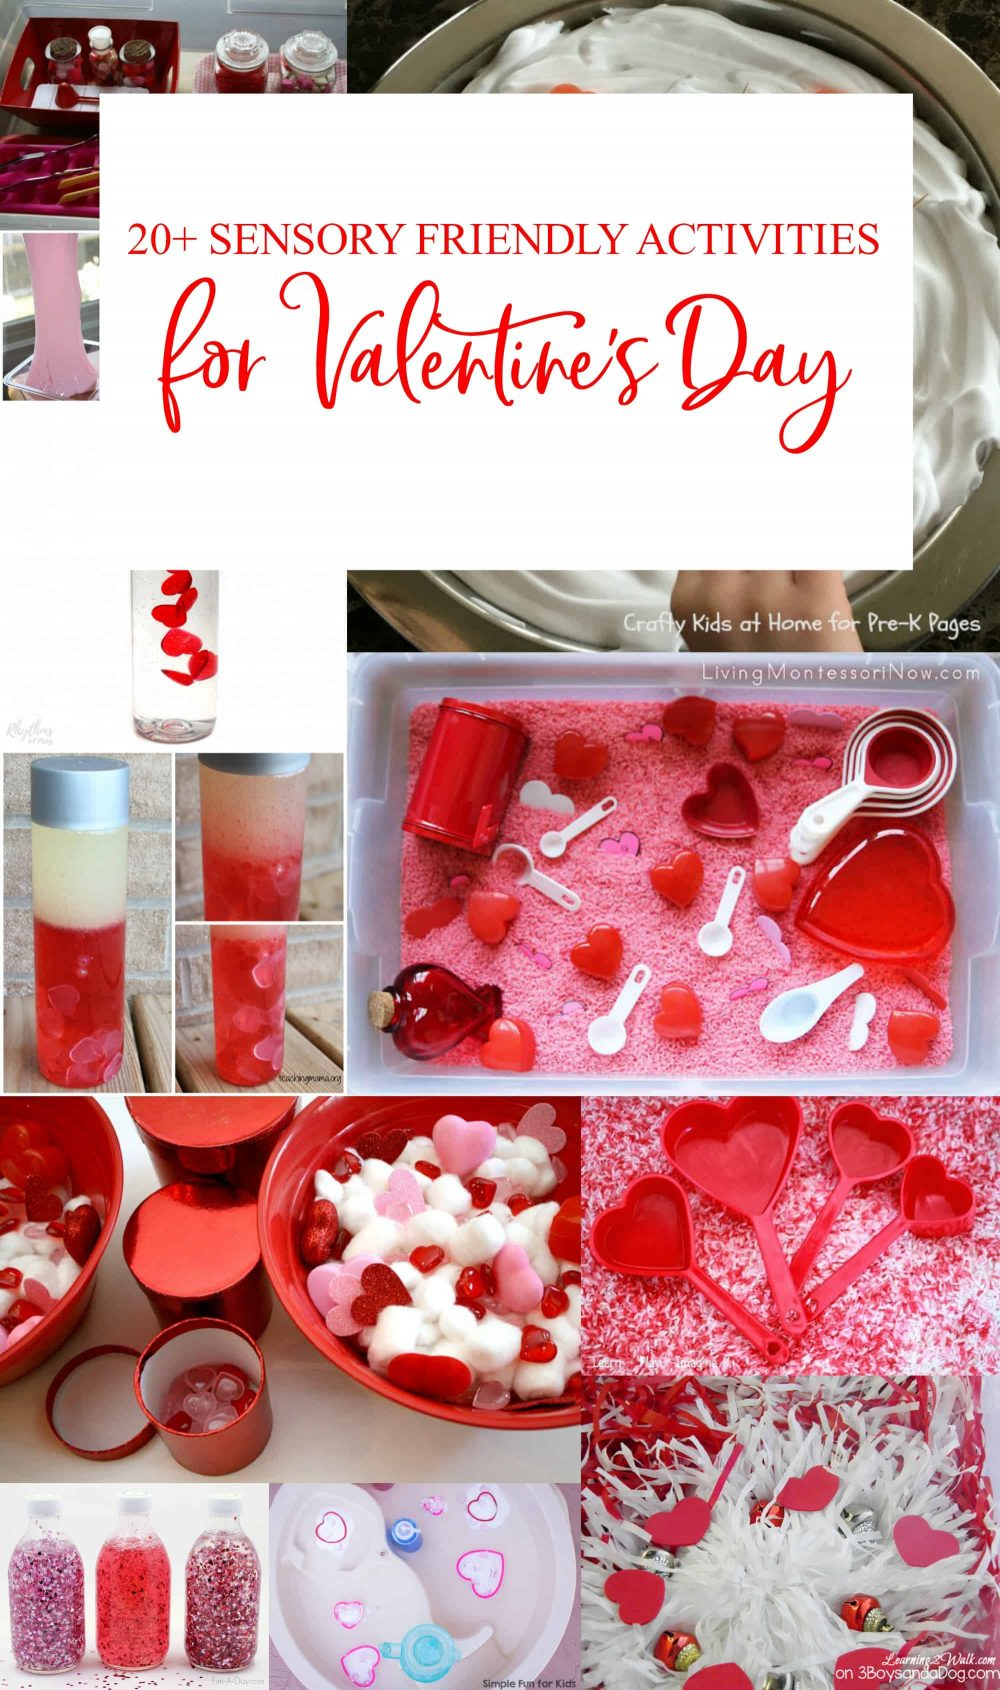 These sensory friendly Valentine's Day activities for kids can also be used for those on the autism spectrum.